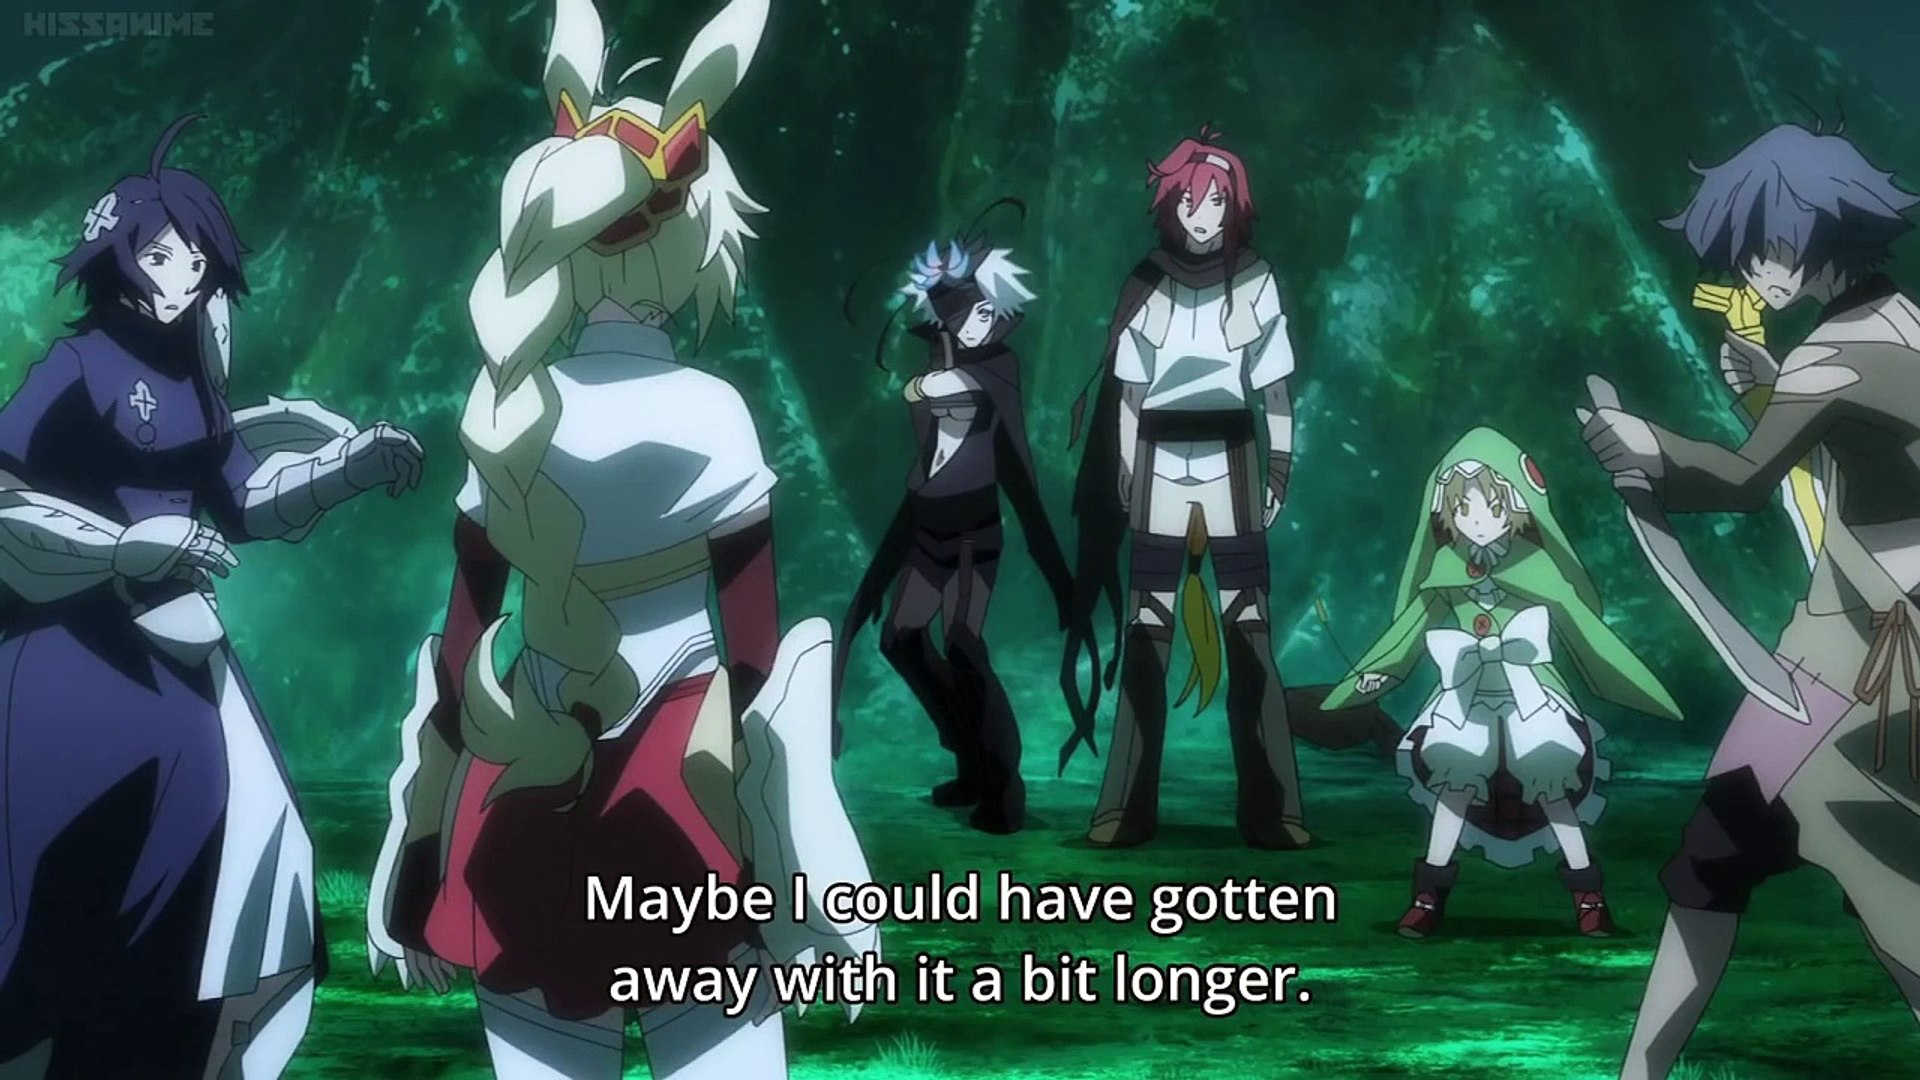 【Rokka no Yuusha: 7th Brave REVEALED, 8th Brave Introduced, Adlet x Fremy】- Awesome Anime - HD 1080p